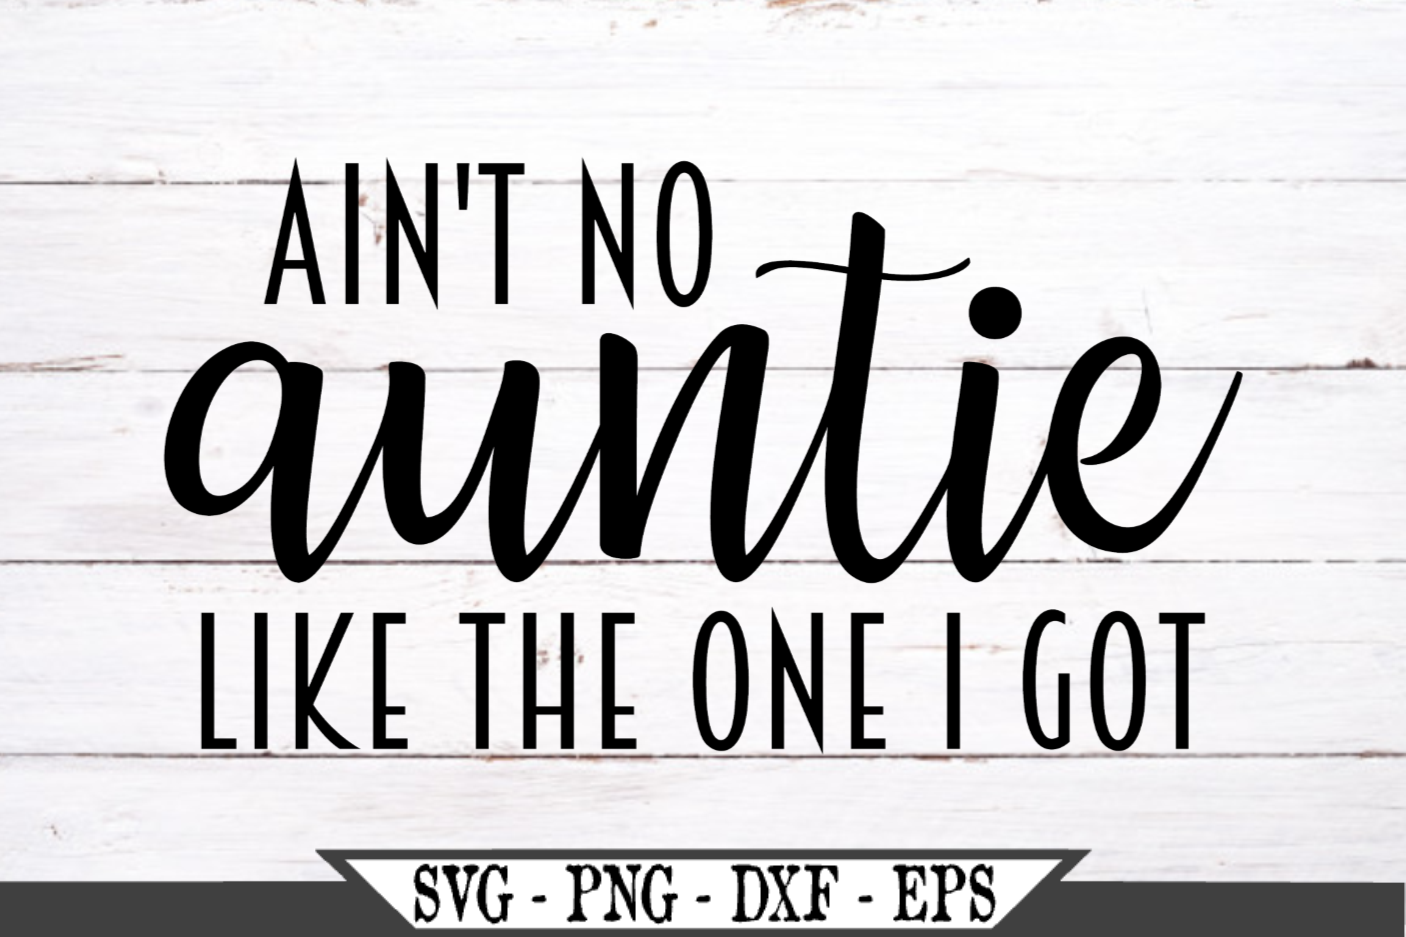 Ain't No Auntie Like The One I Got SVG example image 2